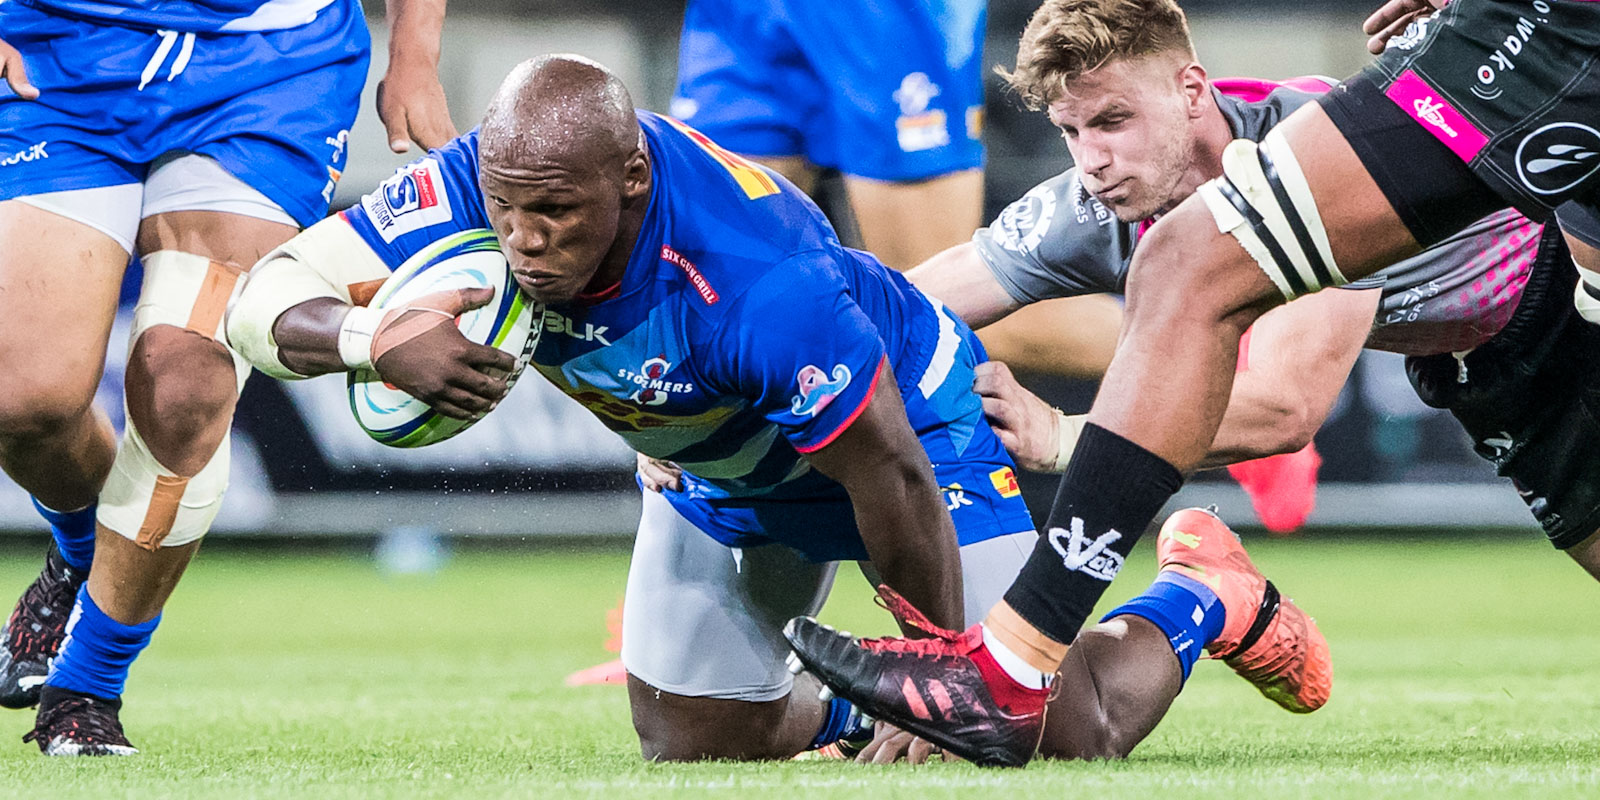 Bongi Mbonambi was one of the DHL Stormers' try scorers.